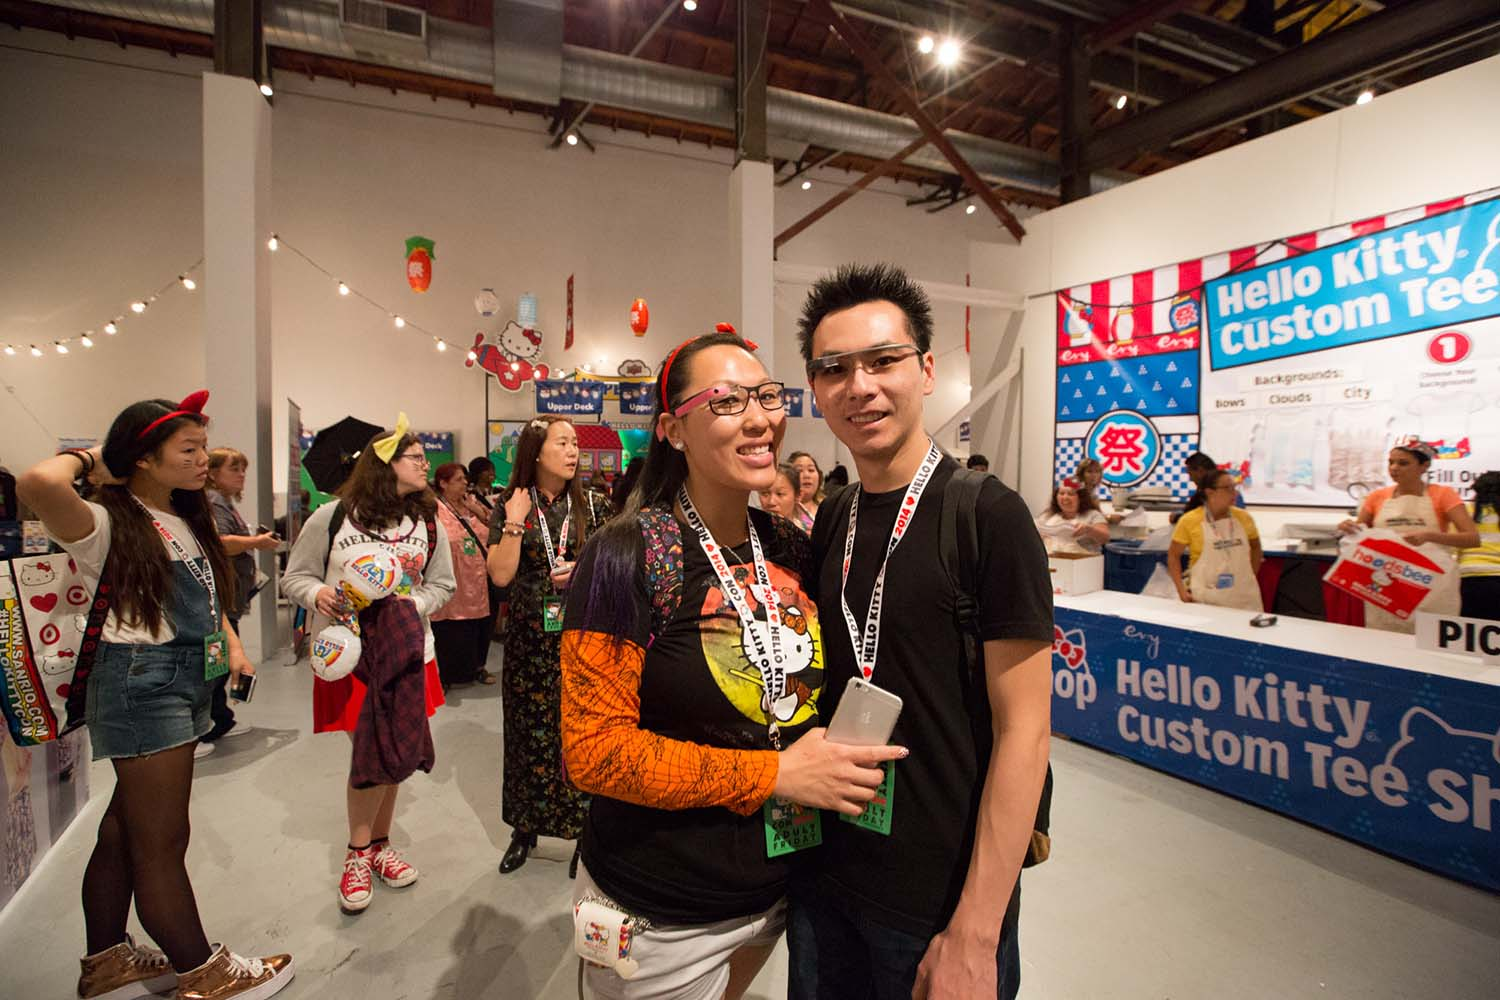 Forty years young hello kitty and the power of cute racked they prefer sanrio exclusives to licensed goods and their latest kick is tracking down early issues of the hello kitty magazine strawberry news solutioingenieria Gallery